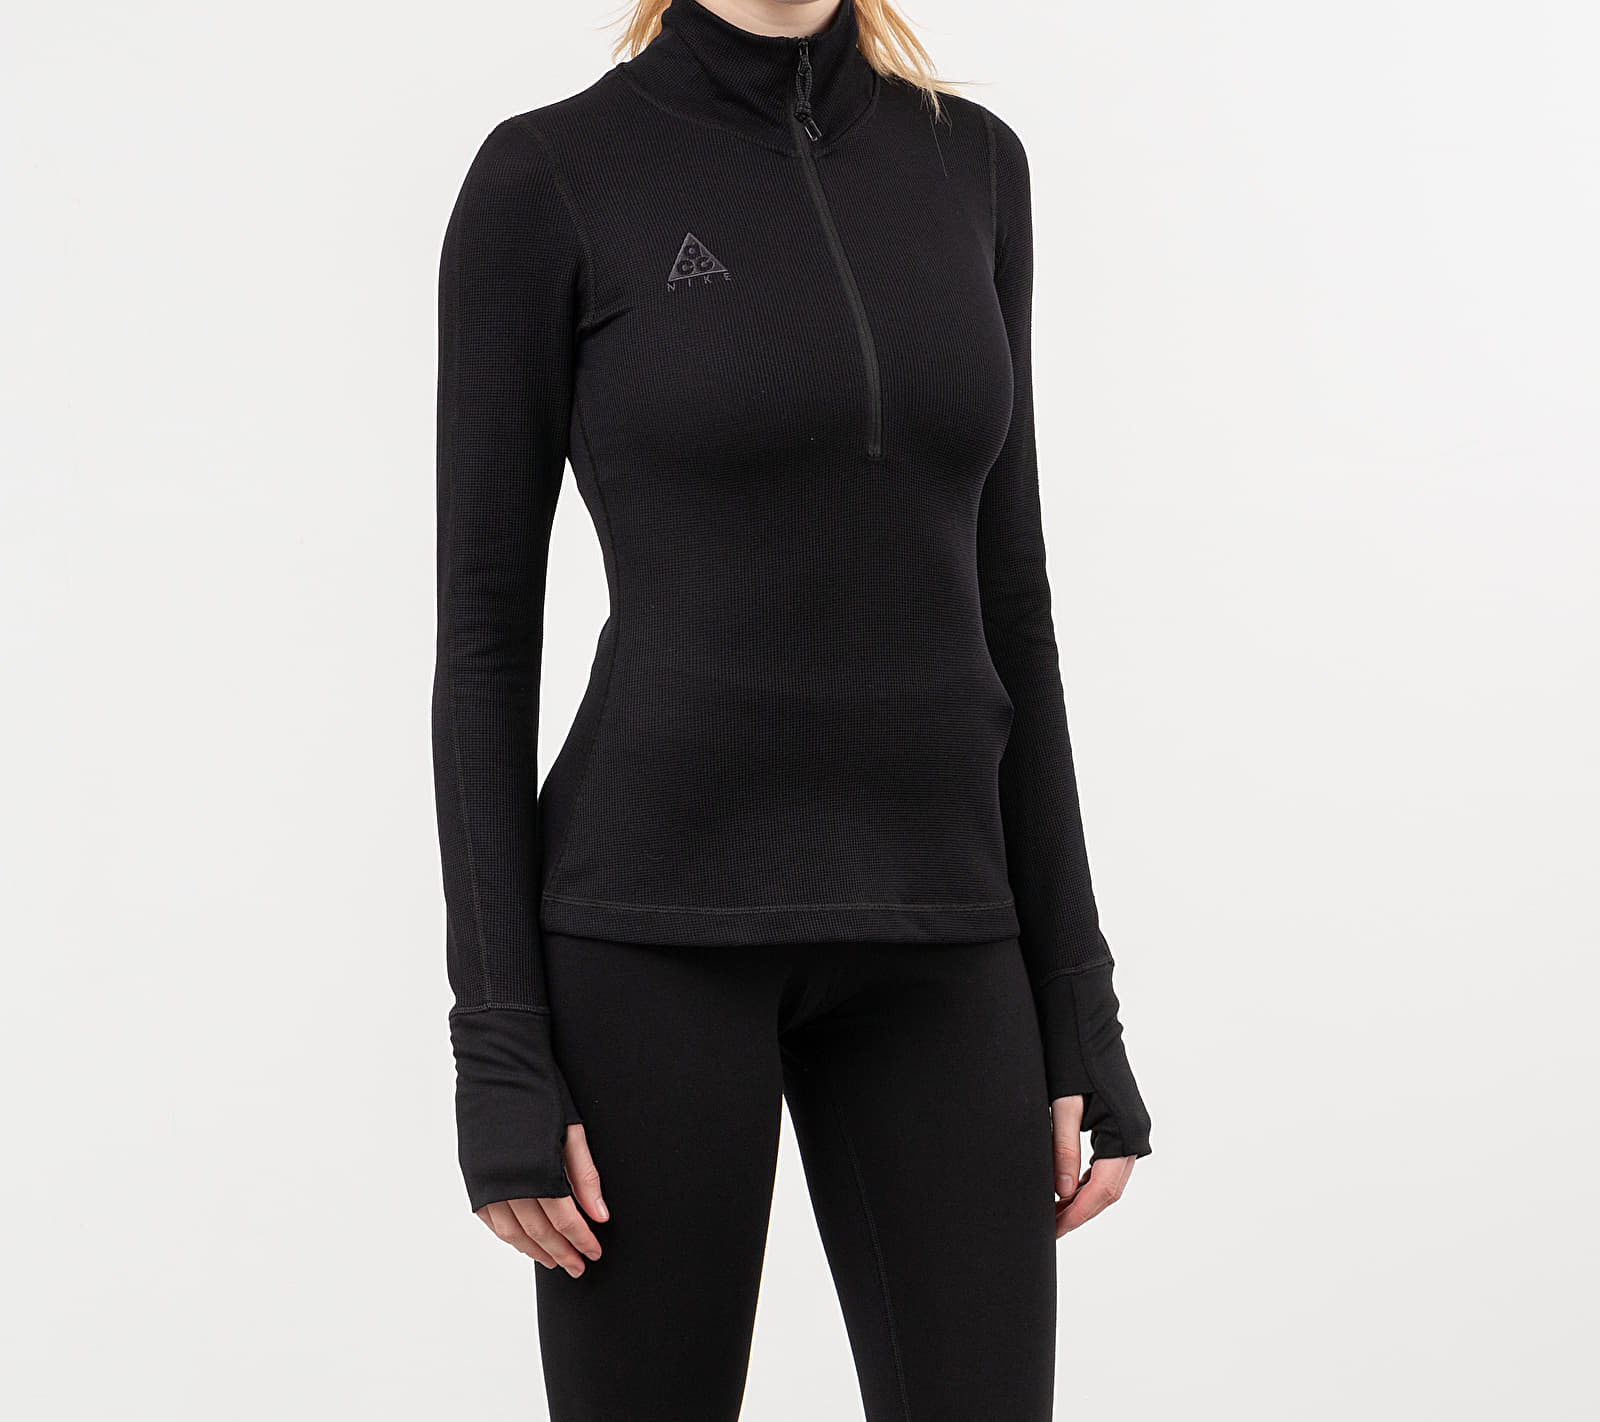 Nike NRG ACG Longsleeve Thermal Top Black/ Anthracite